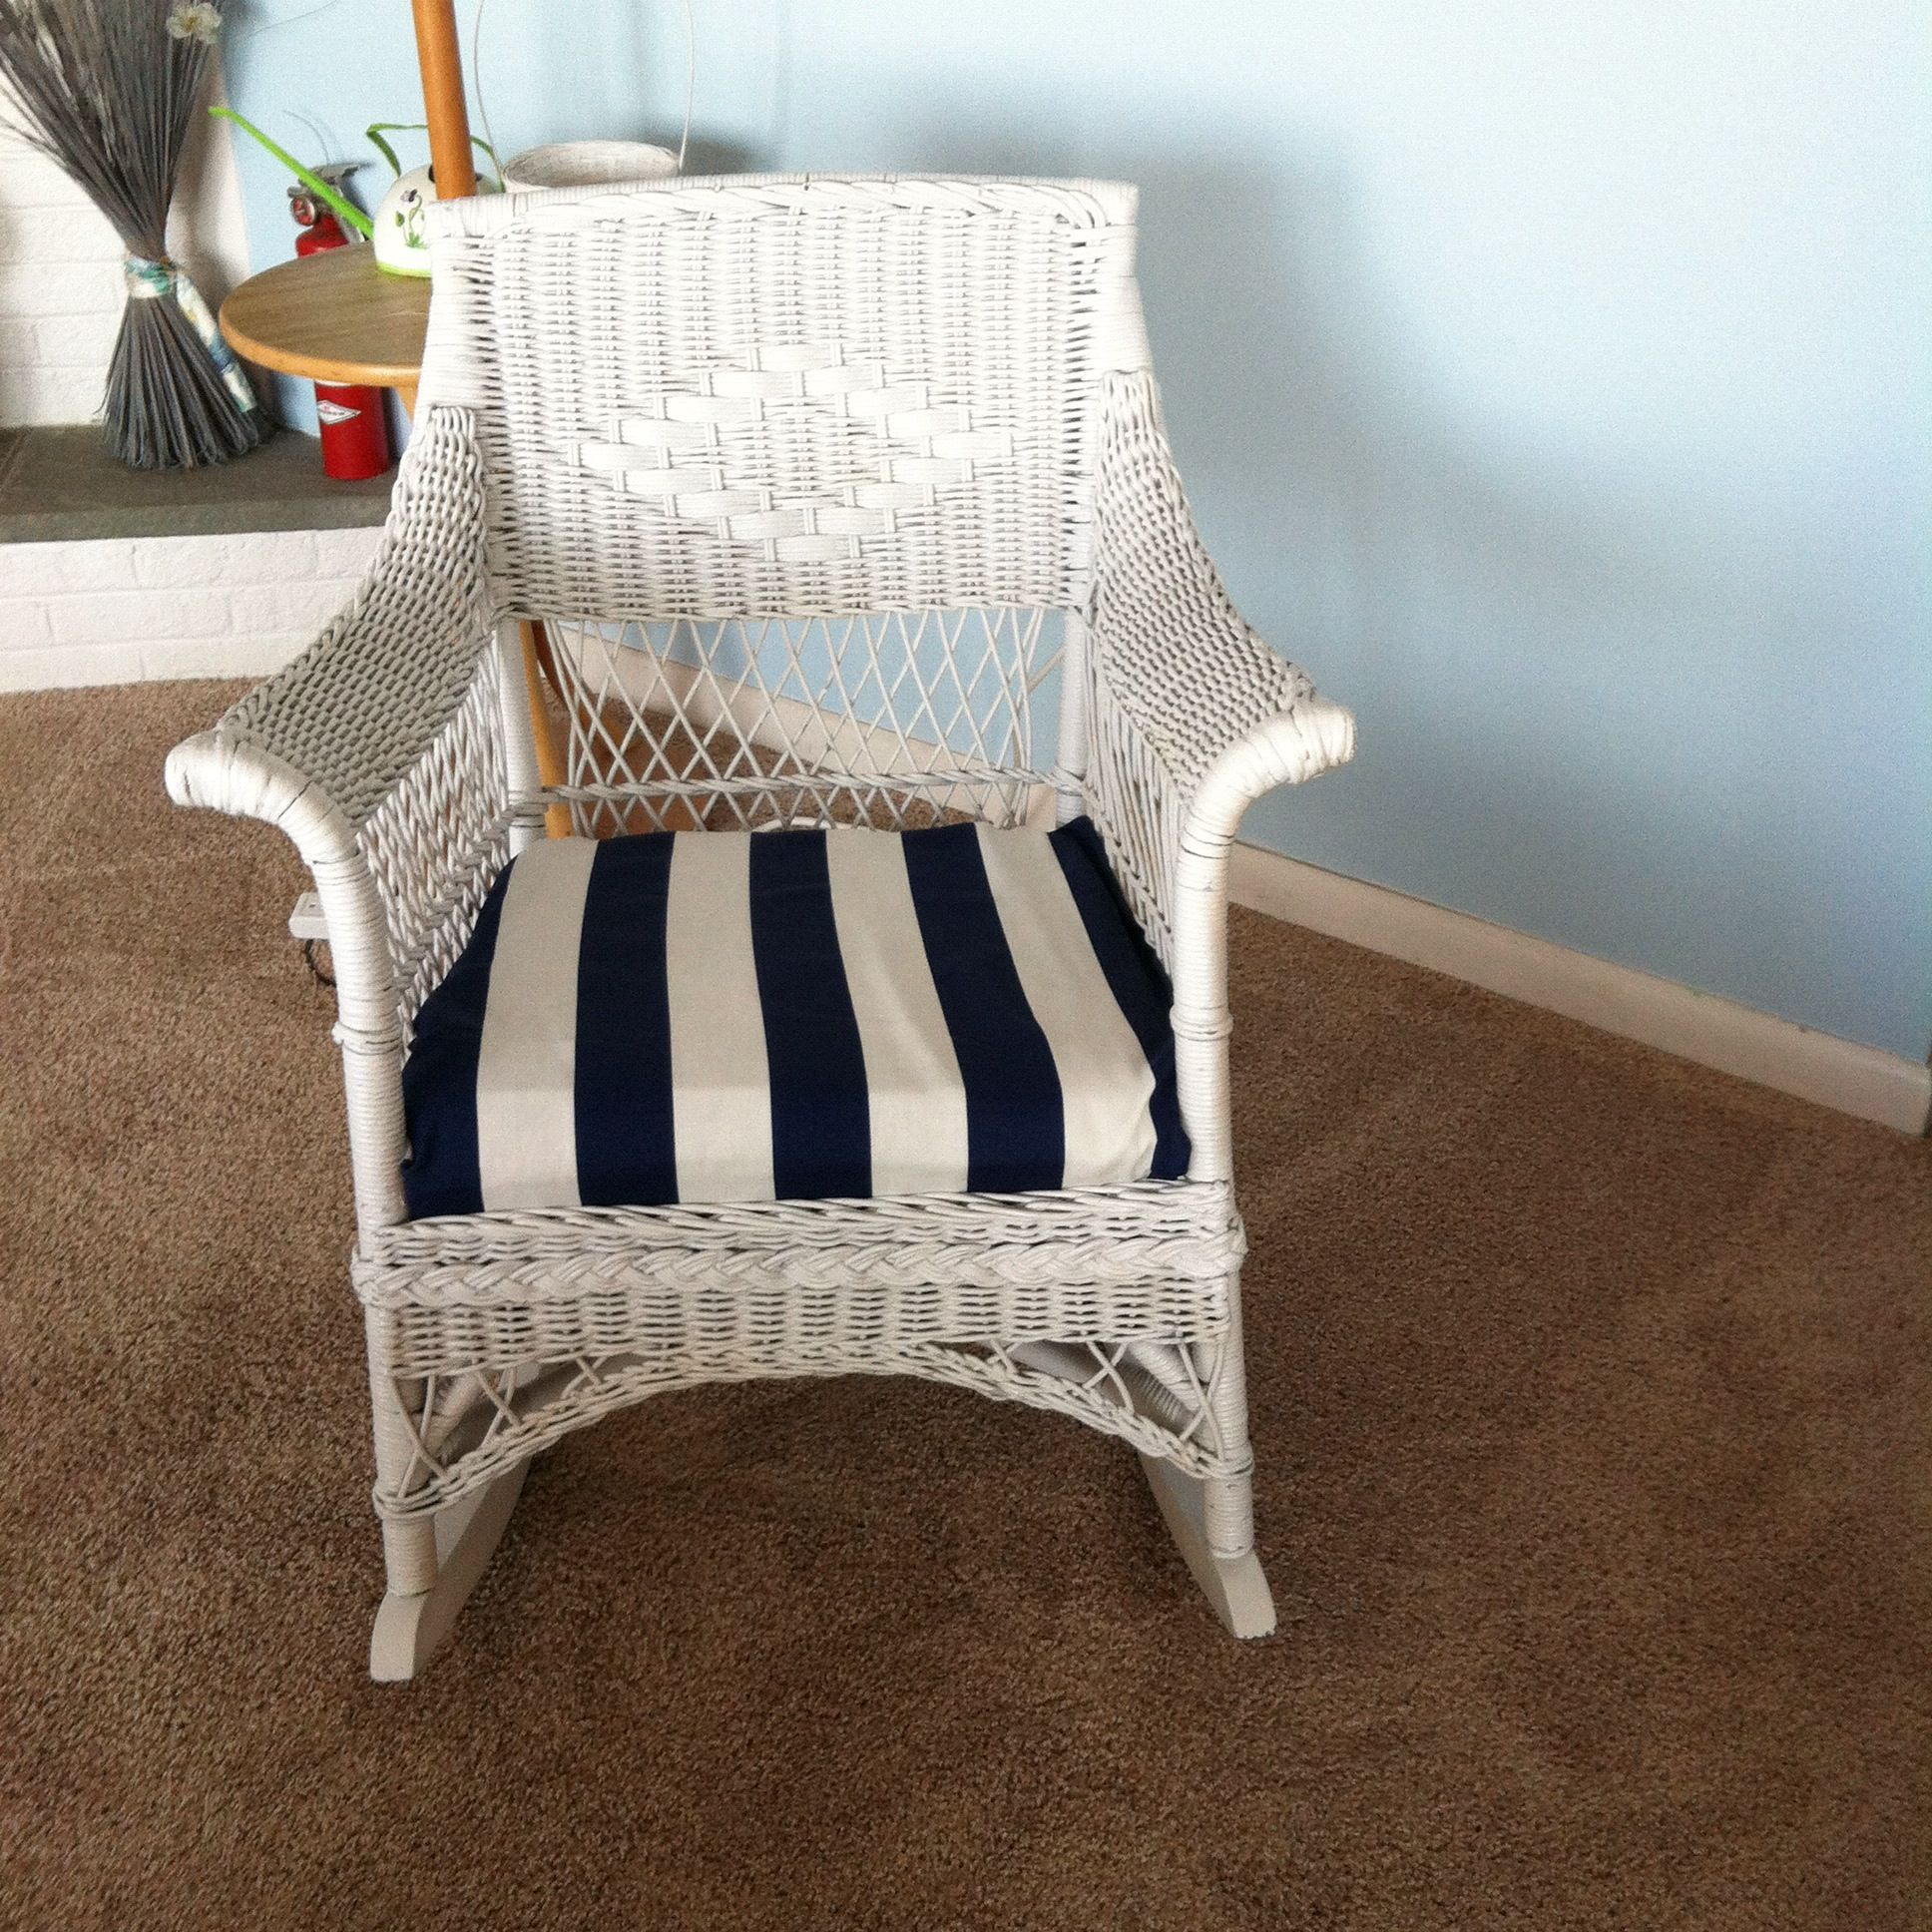 Repurposed Wicker Chair; White weather proof painted and